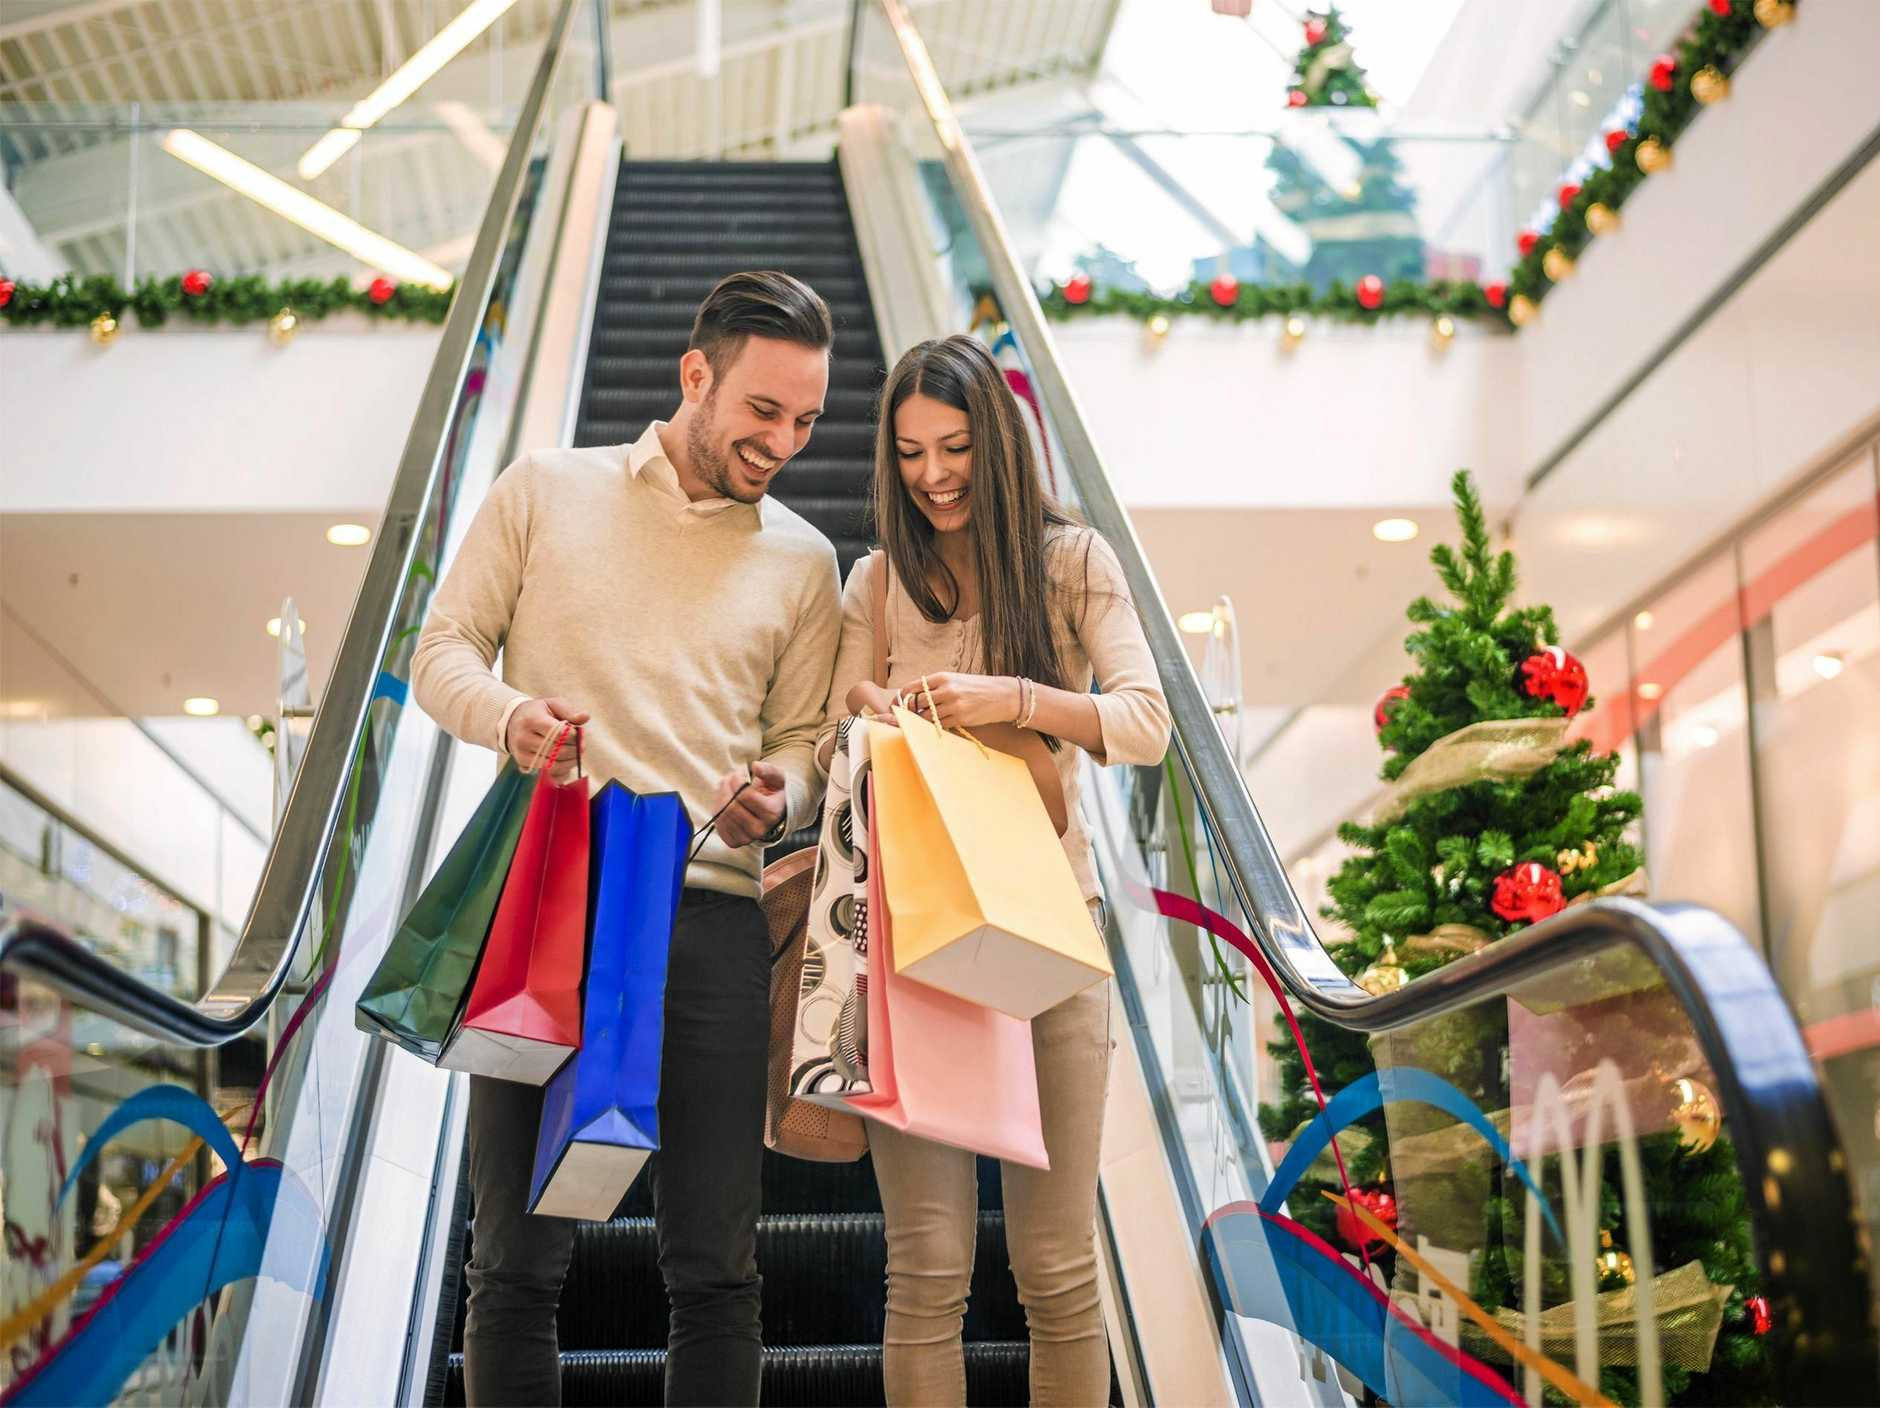 'GET OUT OF MY WAY': Chatterbox takes on Christmas shoppers.